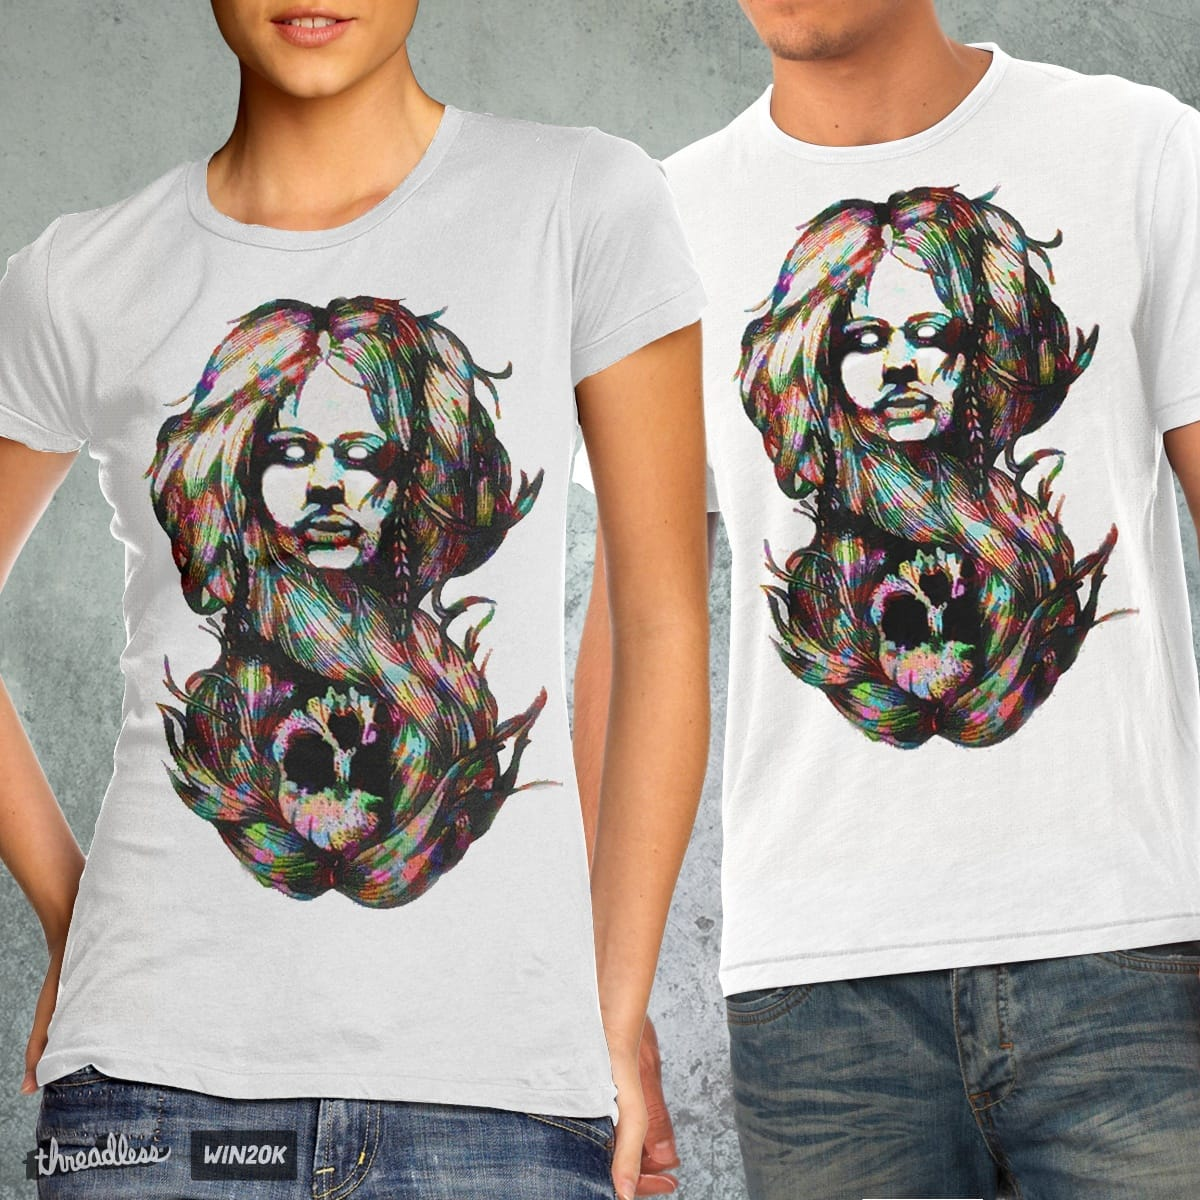 The Girl Next Door - 2nd Face by milios.thanasis on Threadless